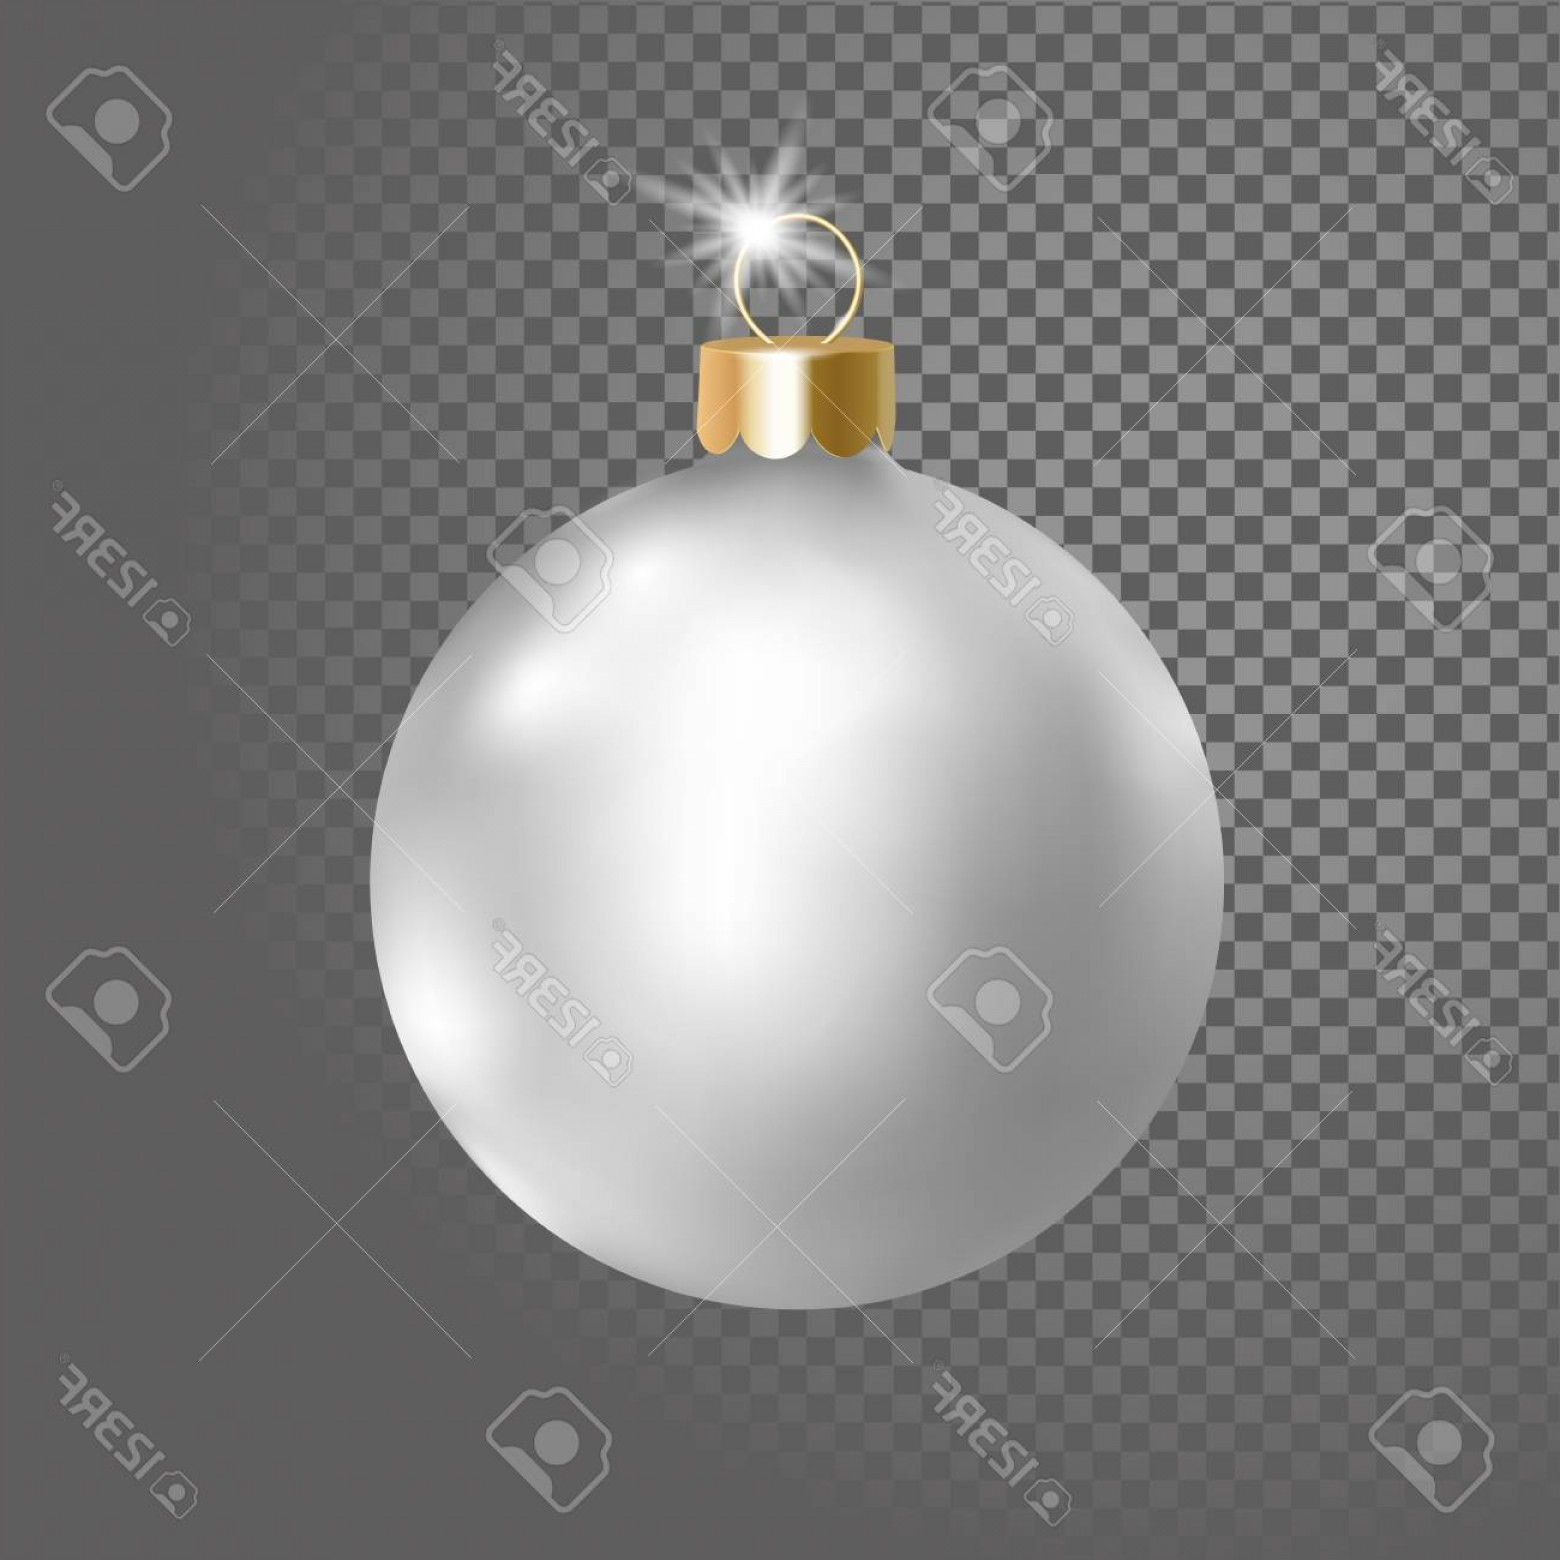 3 Glass Christmas Bulb Vector: Photostock Vector Matted White Silver Christmas Ball Tree Decoration D Realistic Isolated On Transparent Background D